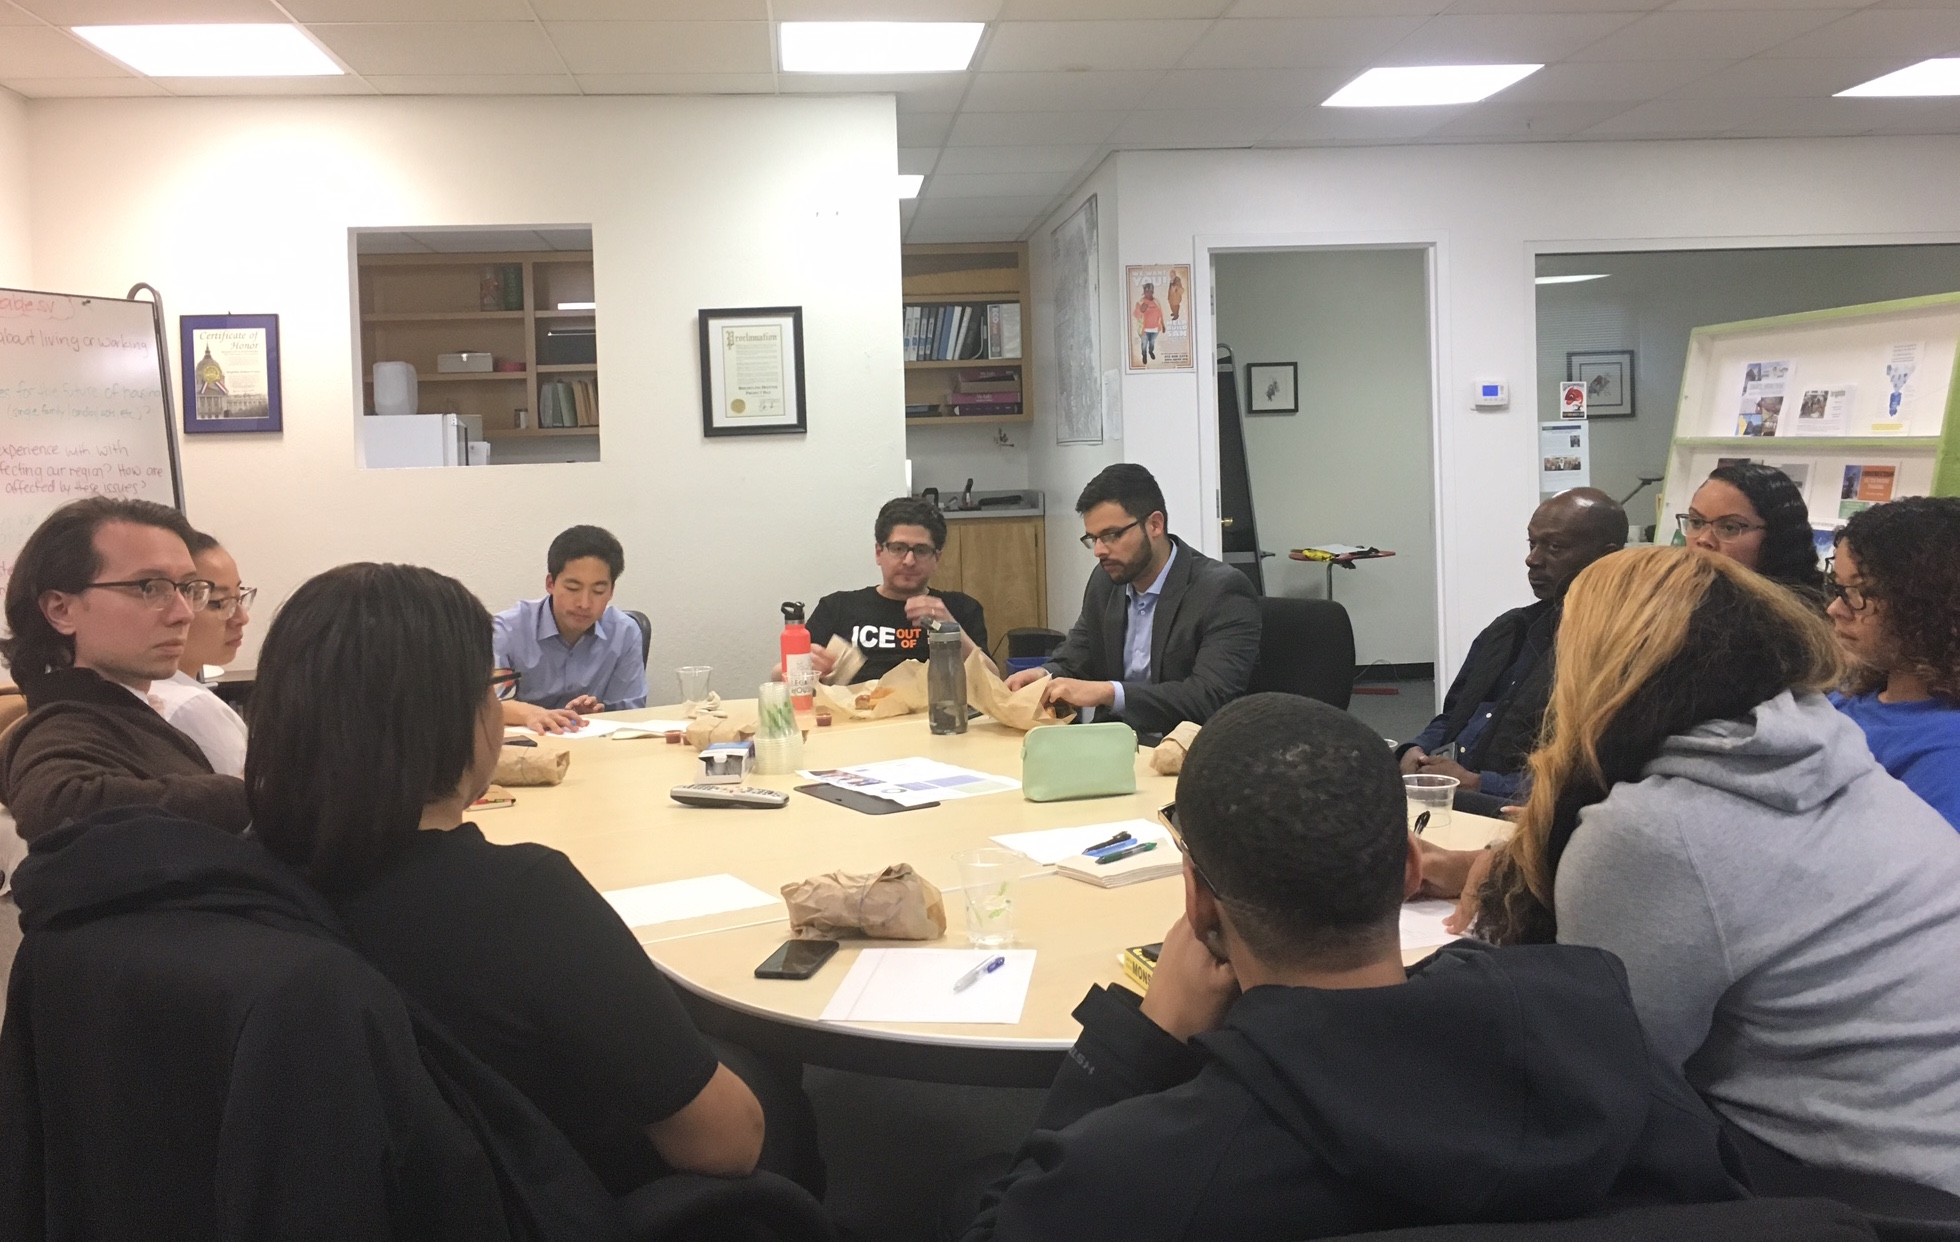 Community members and nonprofit workers at Brightline's office, Nov. 15, 2017